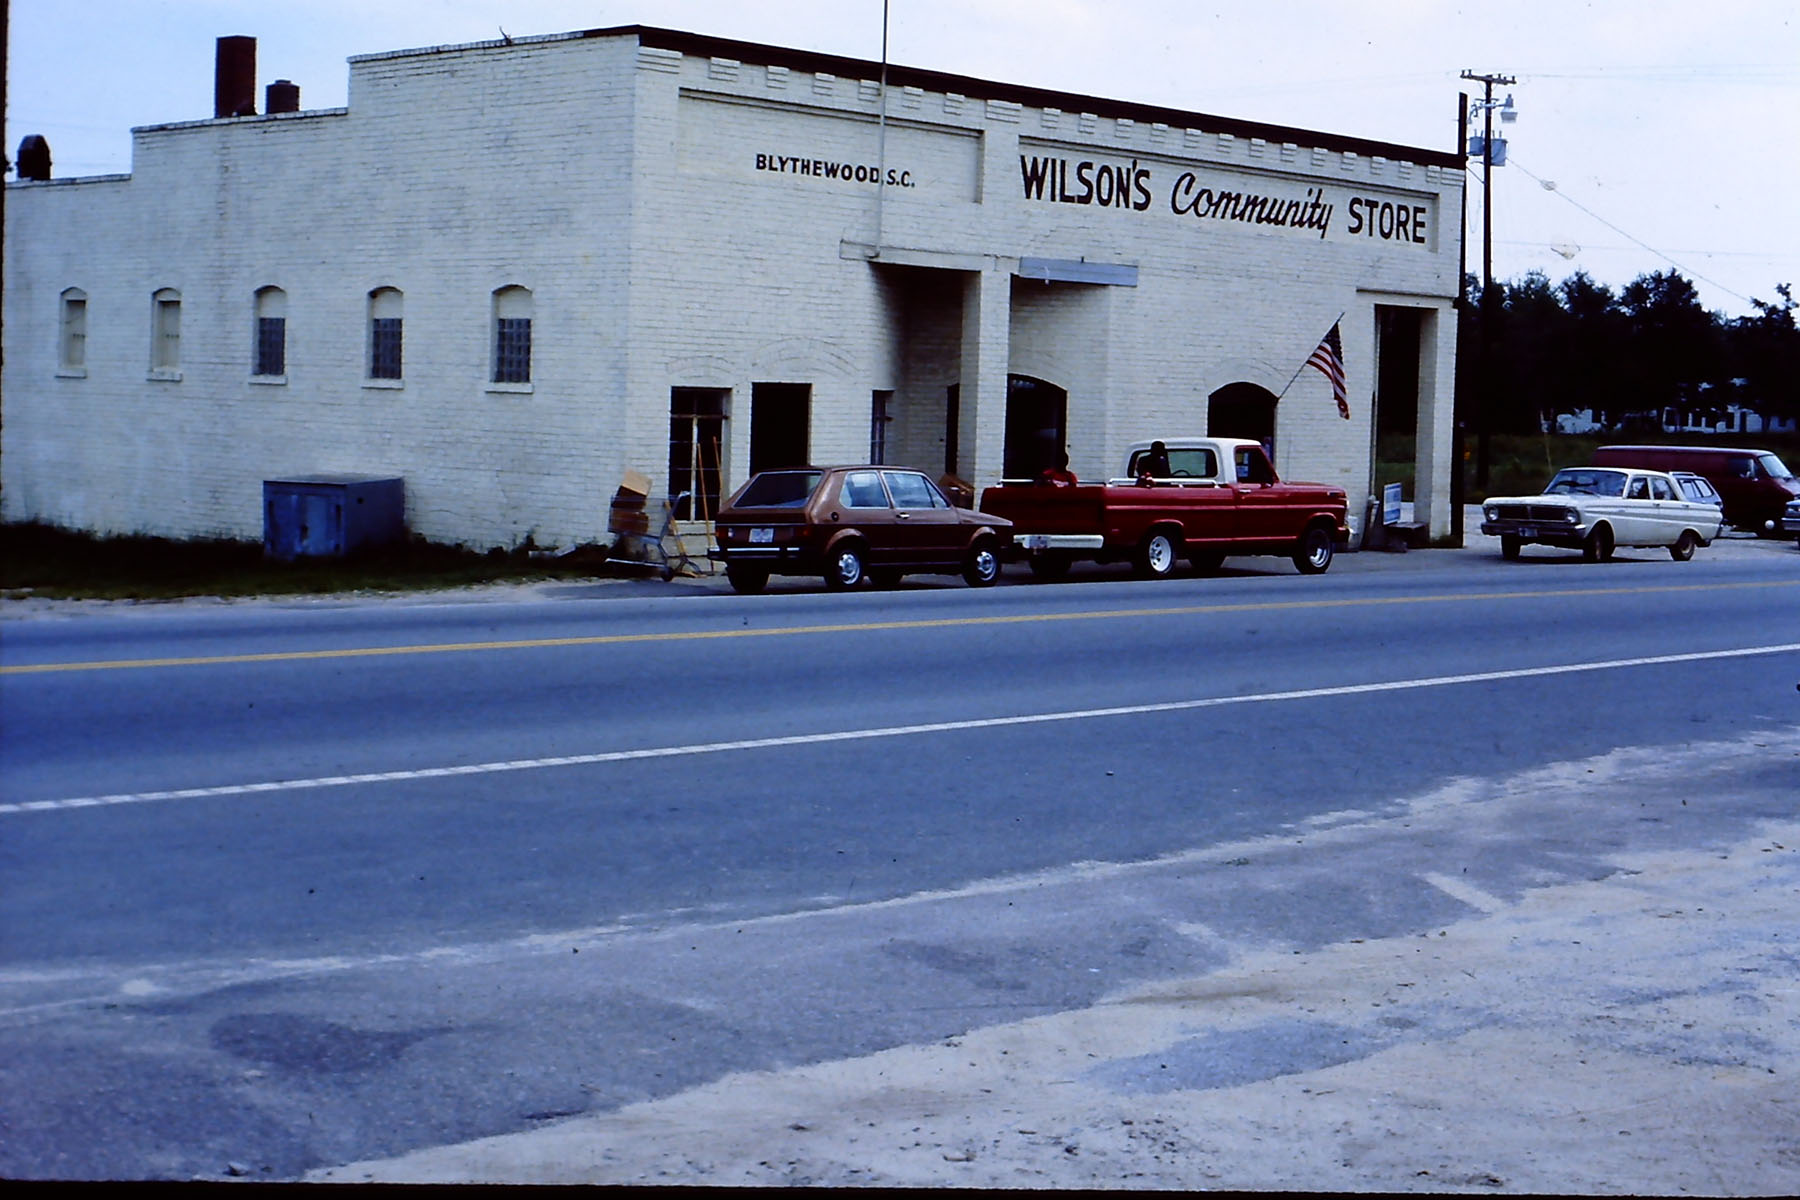 Wilson/Langford Community Store about 1970.  Photo by Hudnalle McLean Sr.